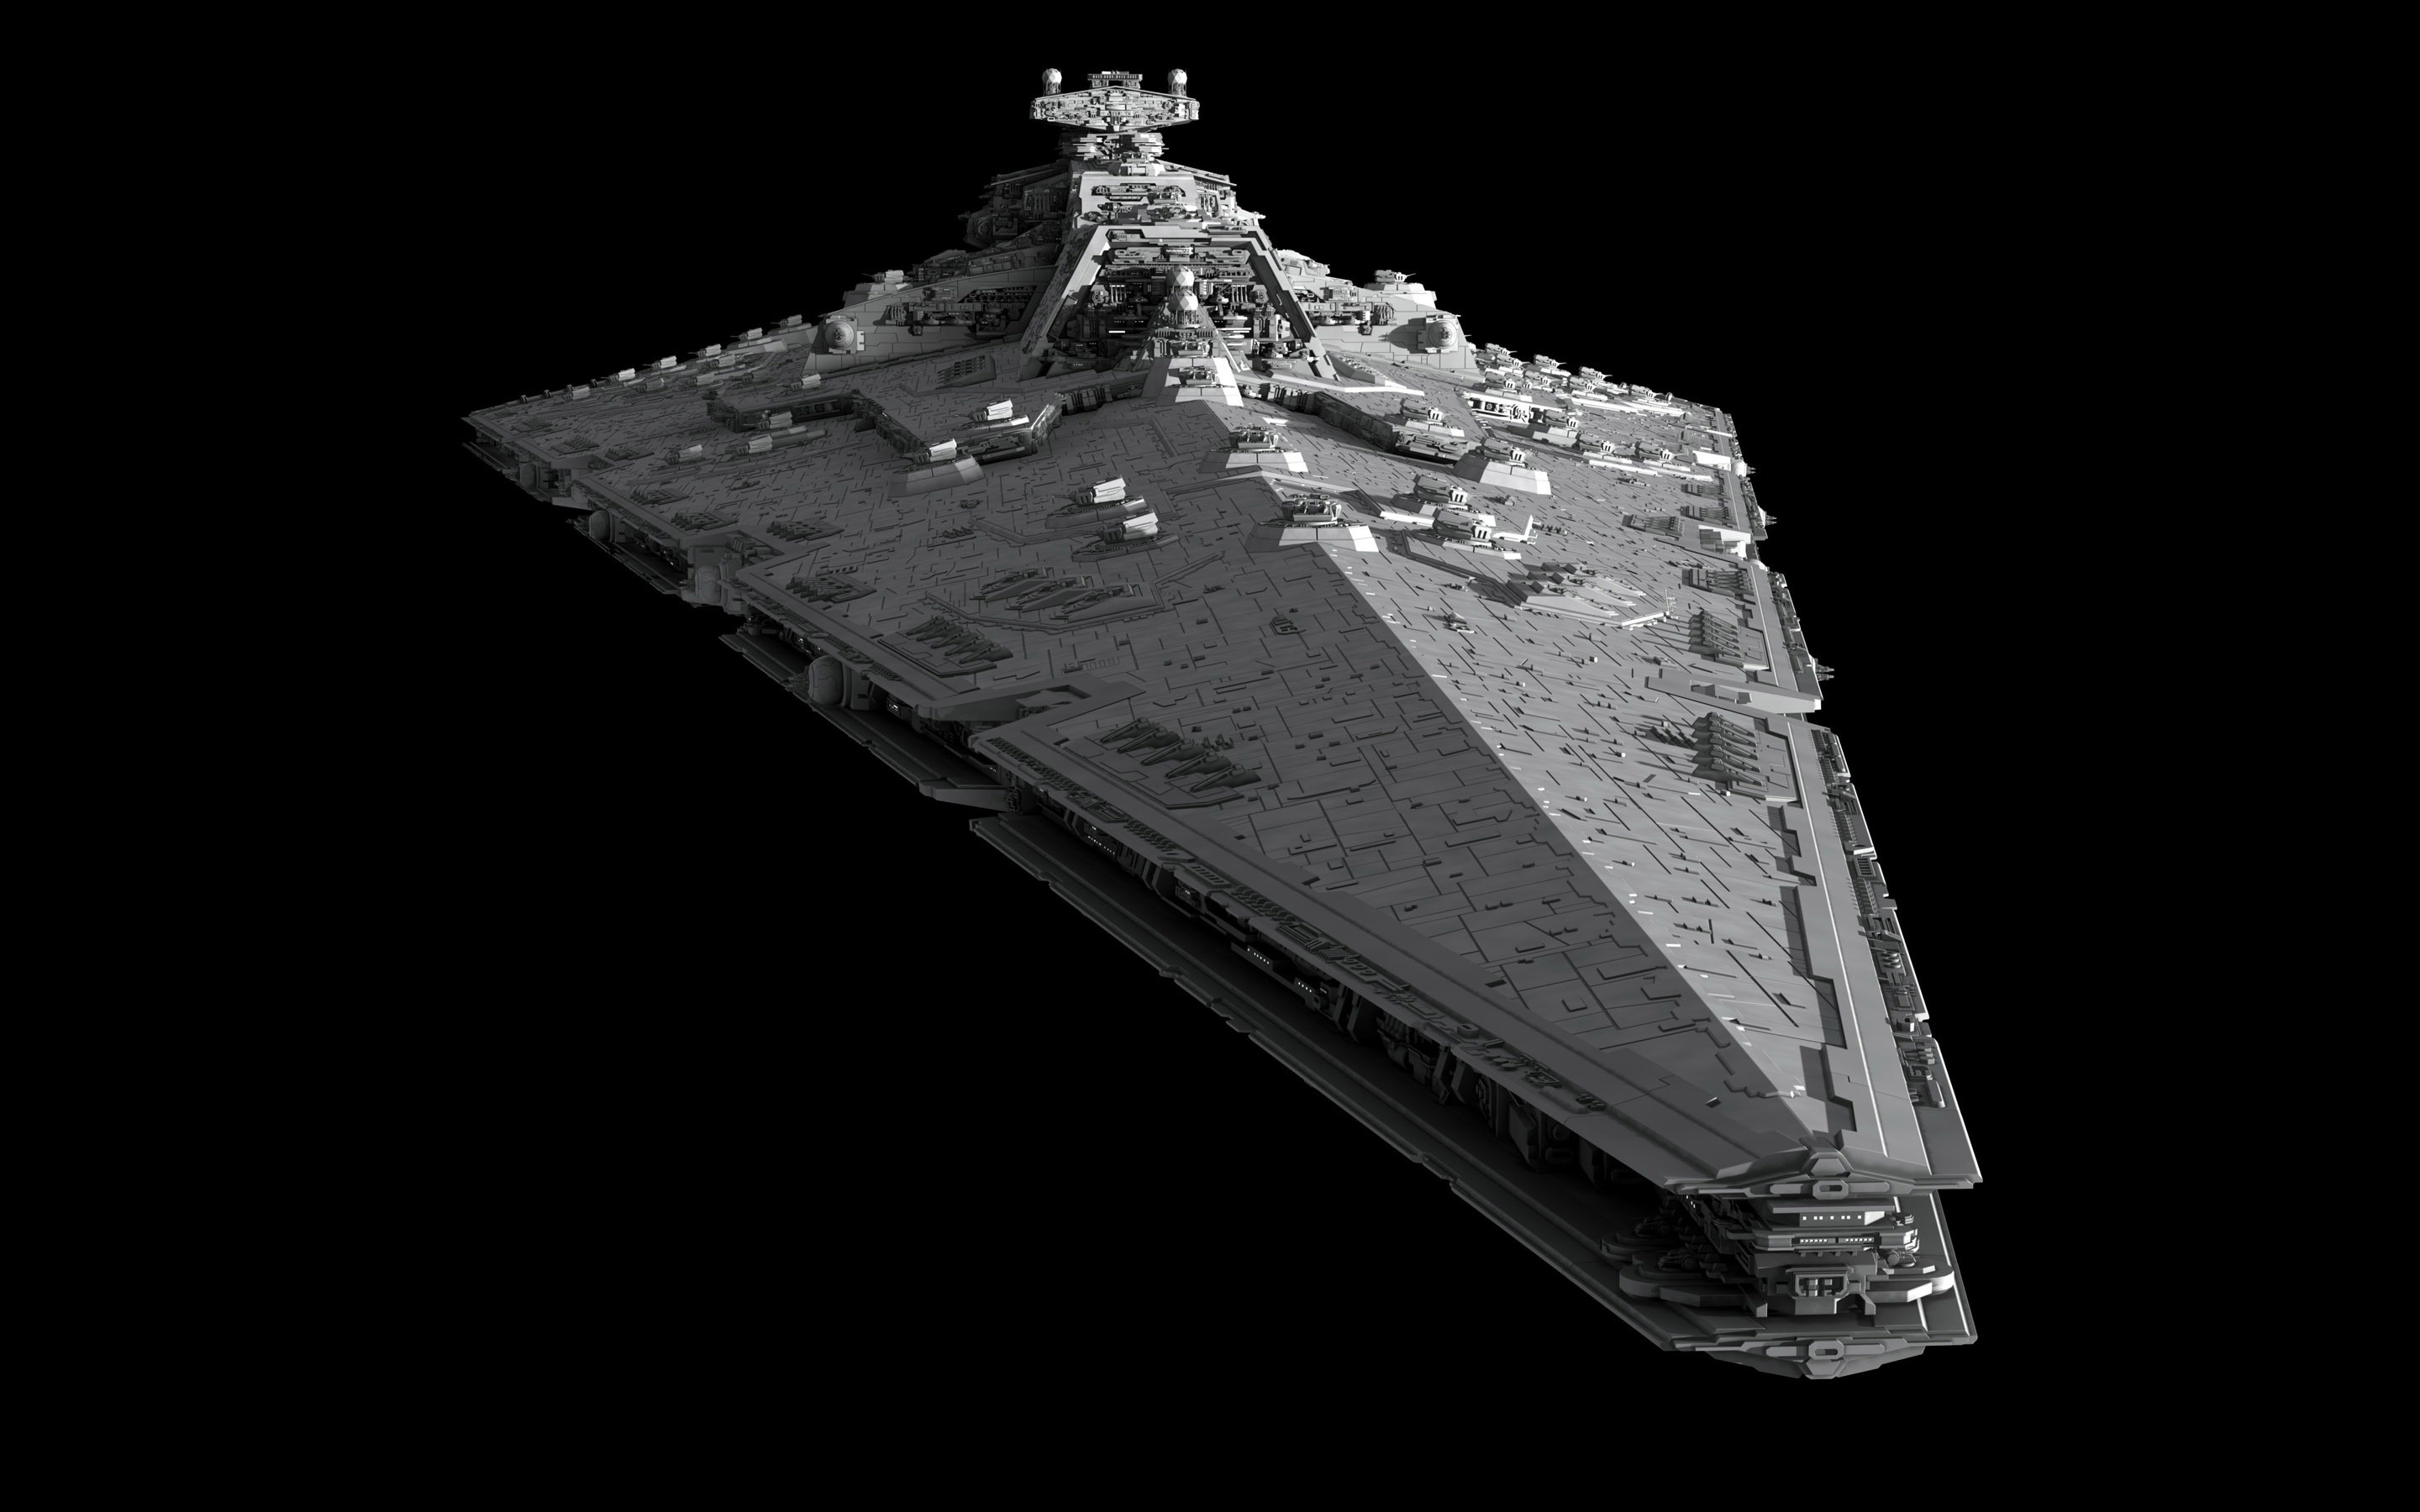 2880x1800 25 best Imperial Navy images on Pinterest | Star destroyer, Star wars ships  and Star wars art